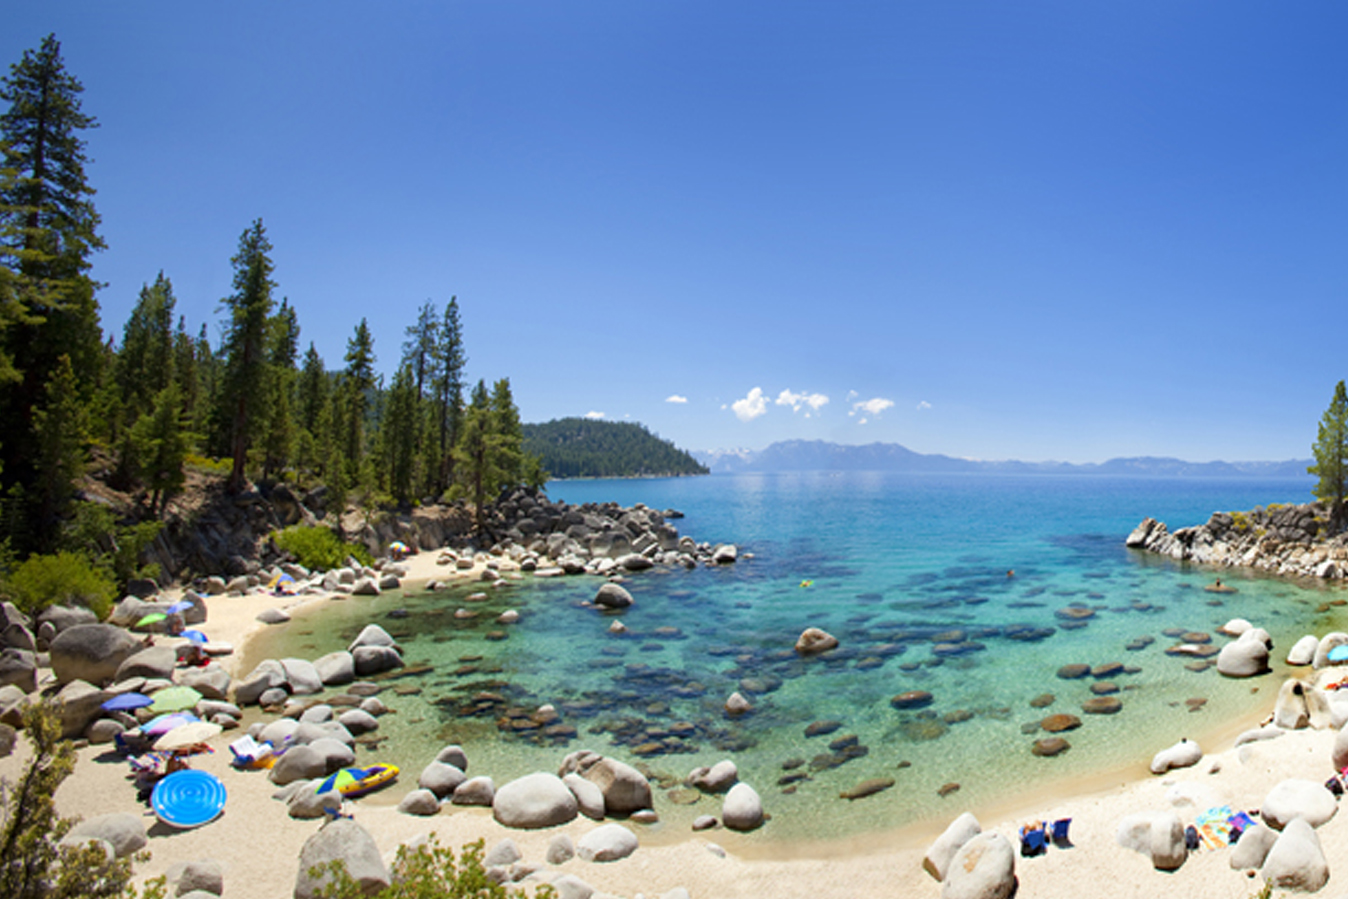 top 5 tuesday: summer lake locations - tripbound blog